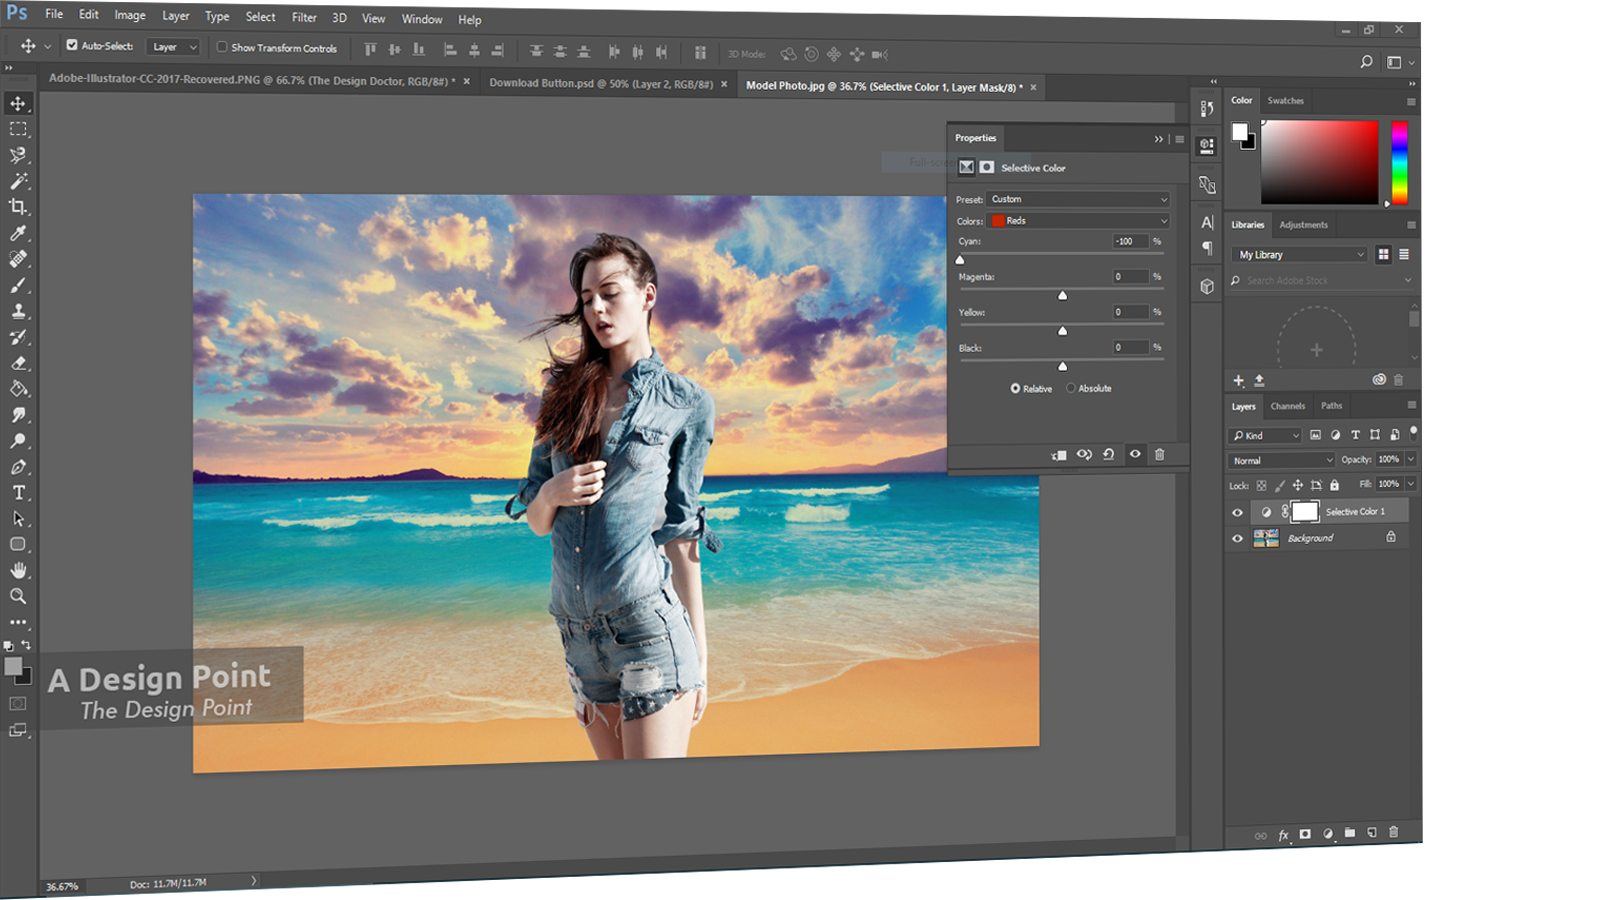 adobe photoshop cc 2017 crack only free download